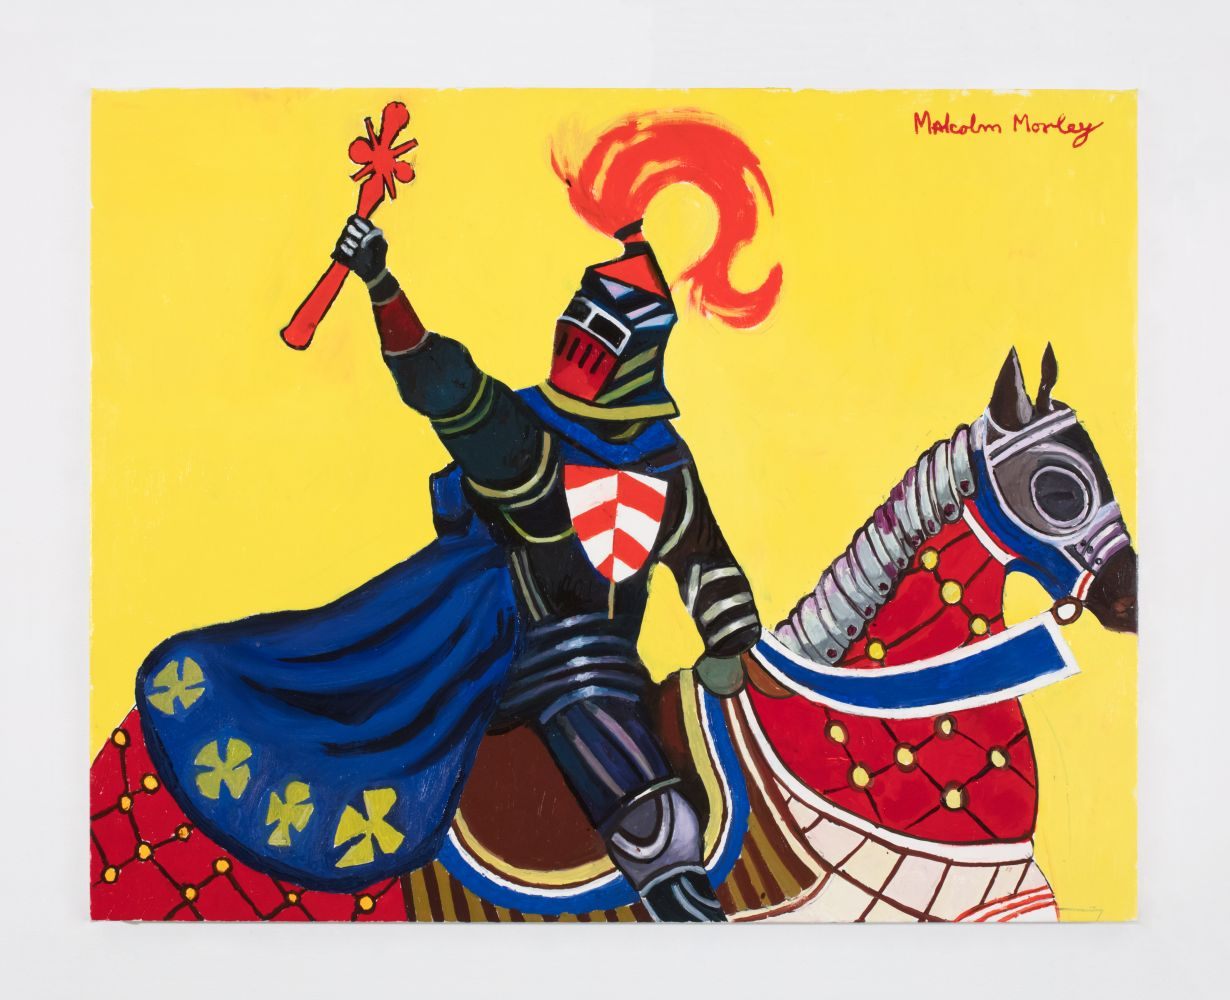 close-up painting of a knight on horseback with his arm raised against a bright yellow background